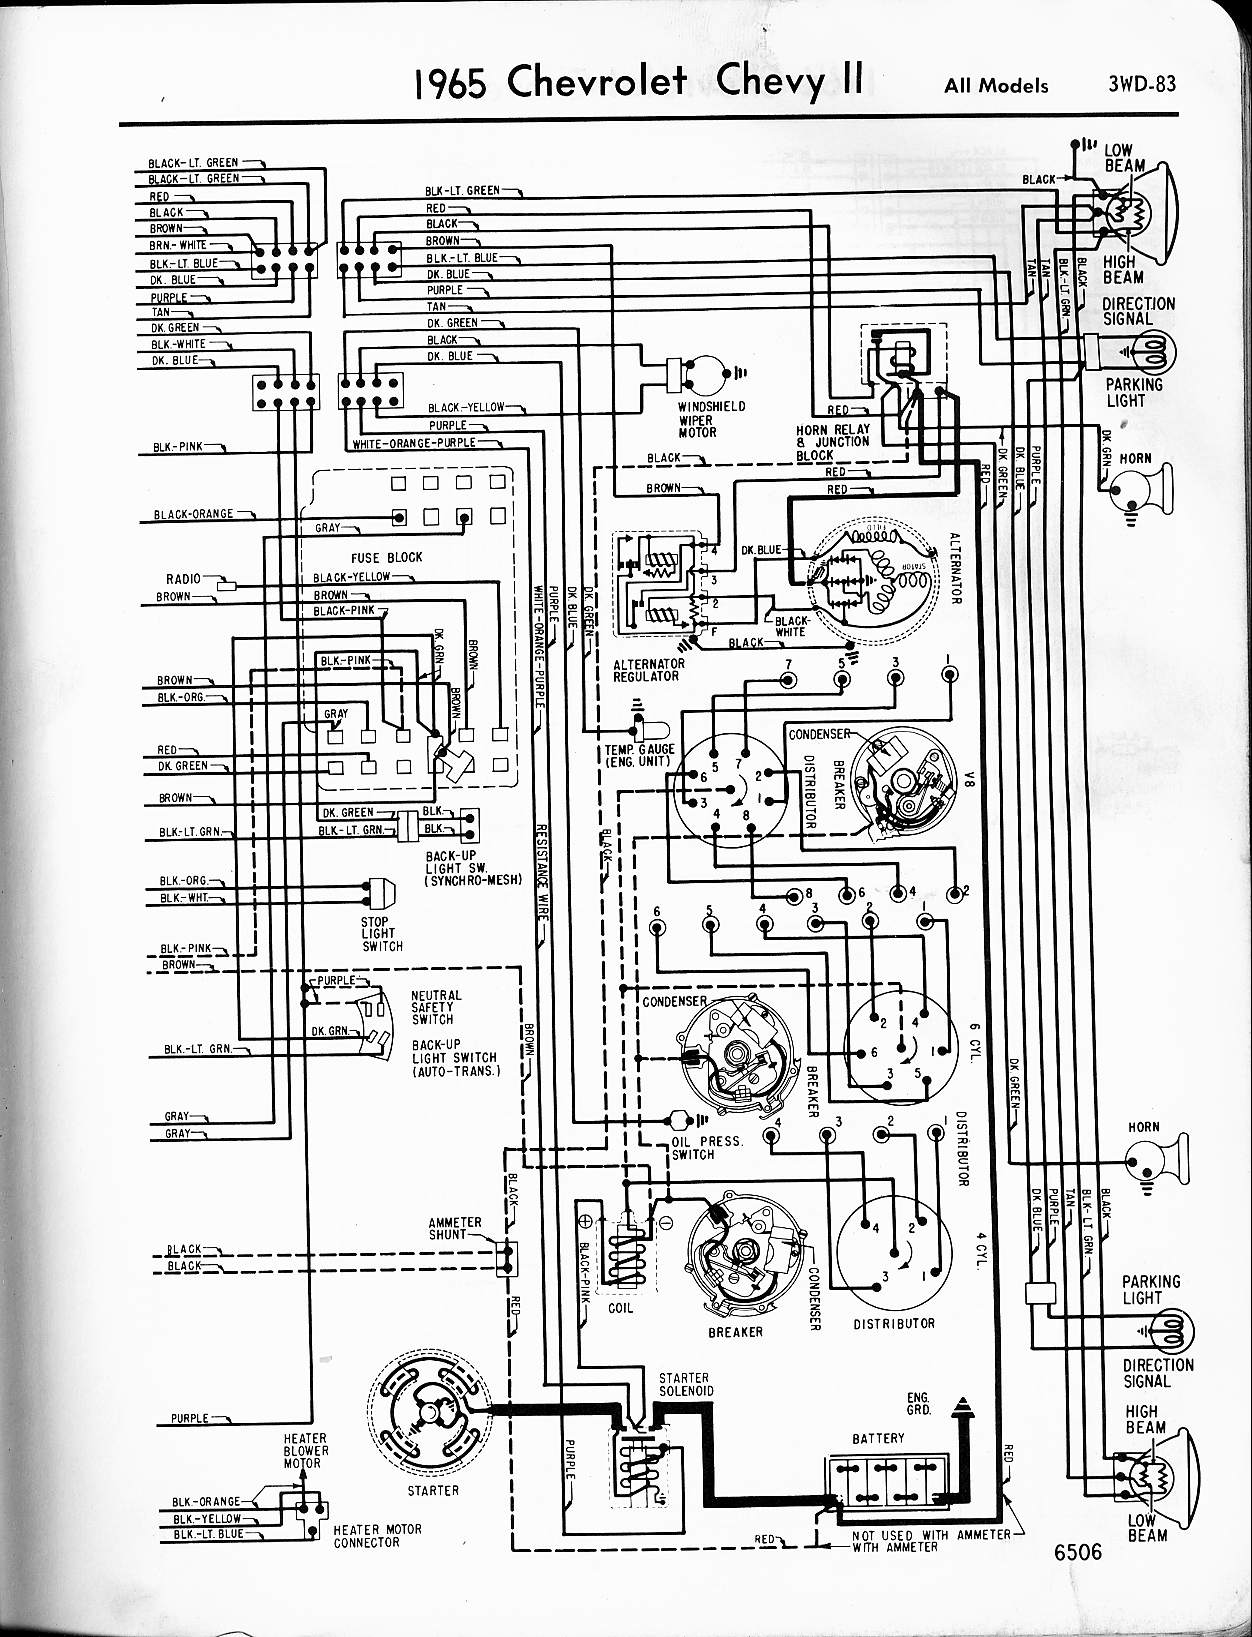 MWireChev65_3WD 083 chevy diagrams 1964 chevy truck wiring diagram at suagrazia.org